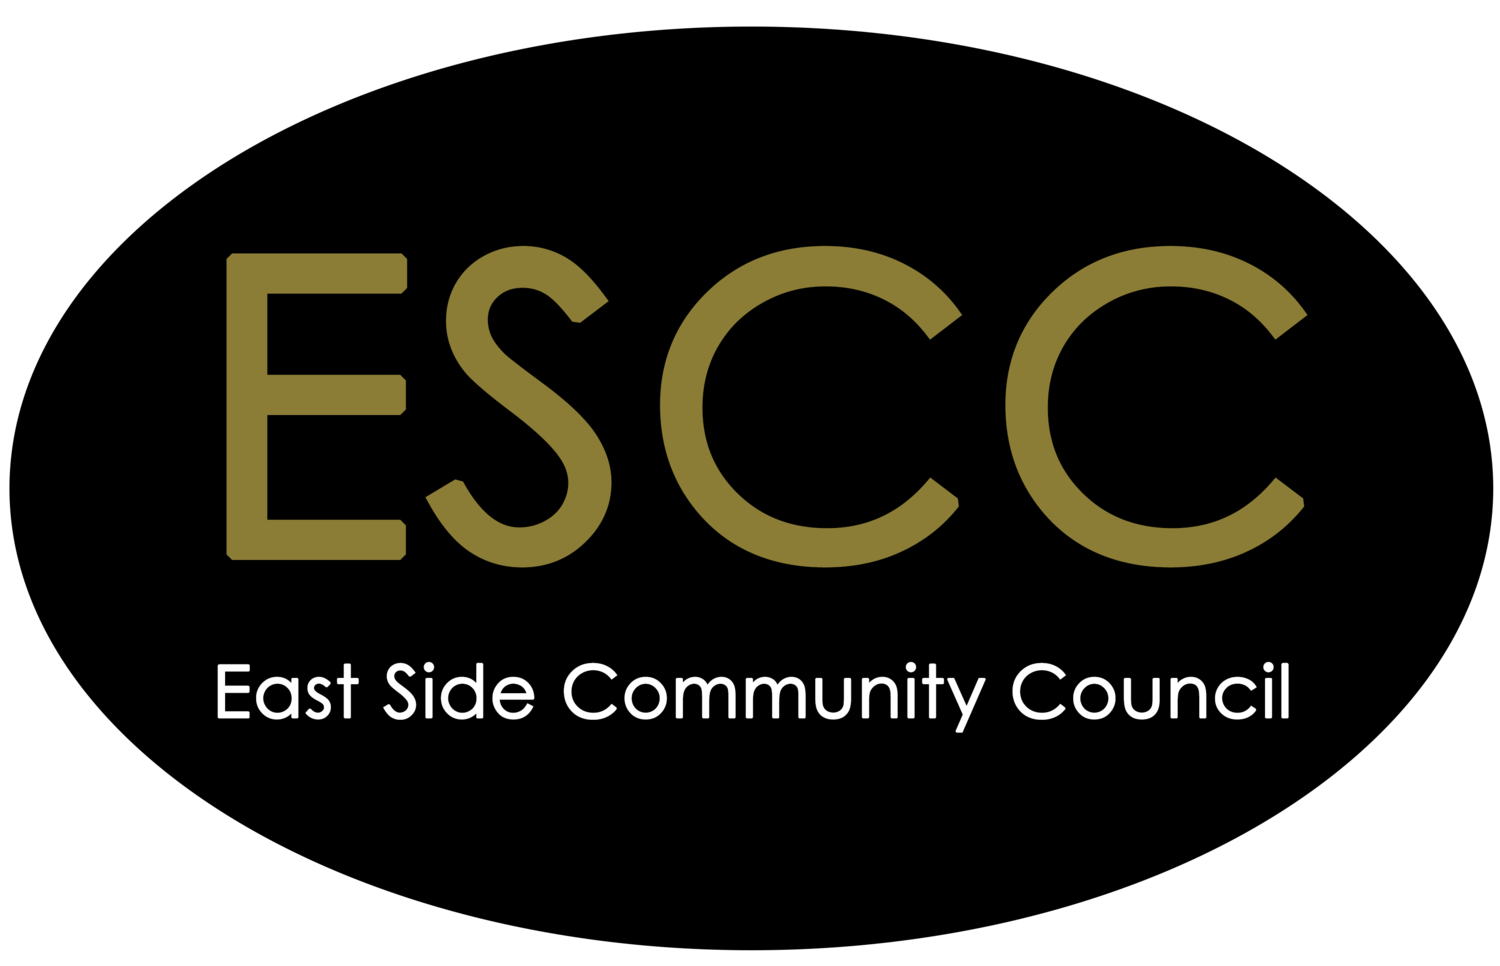 East Side Community Council